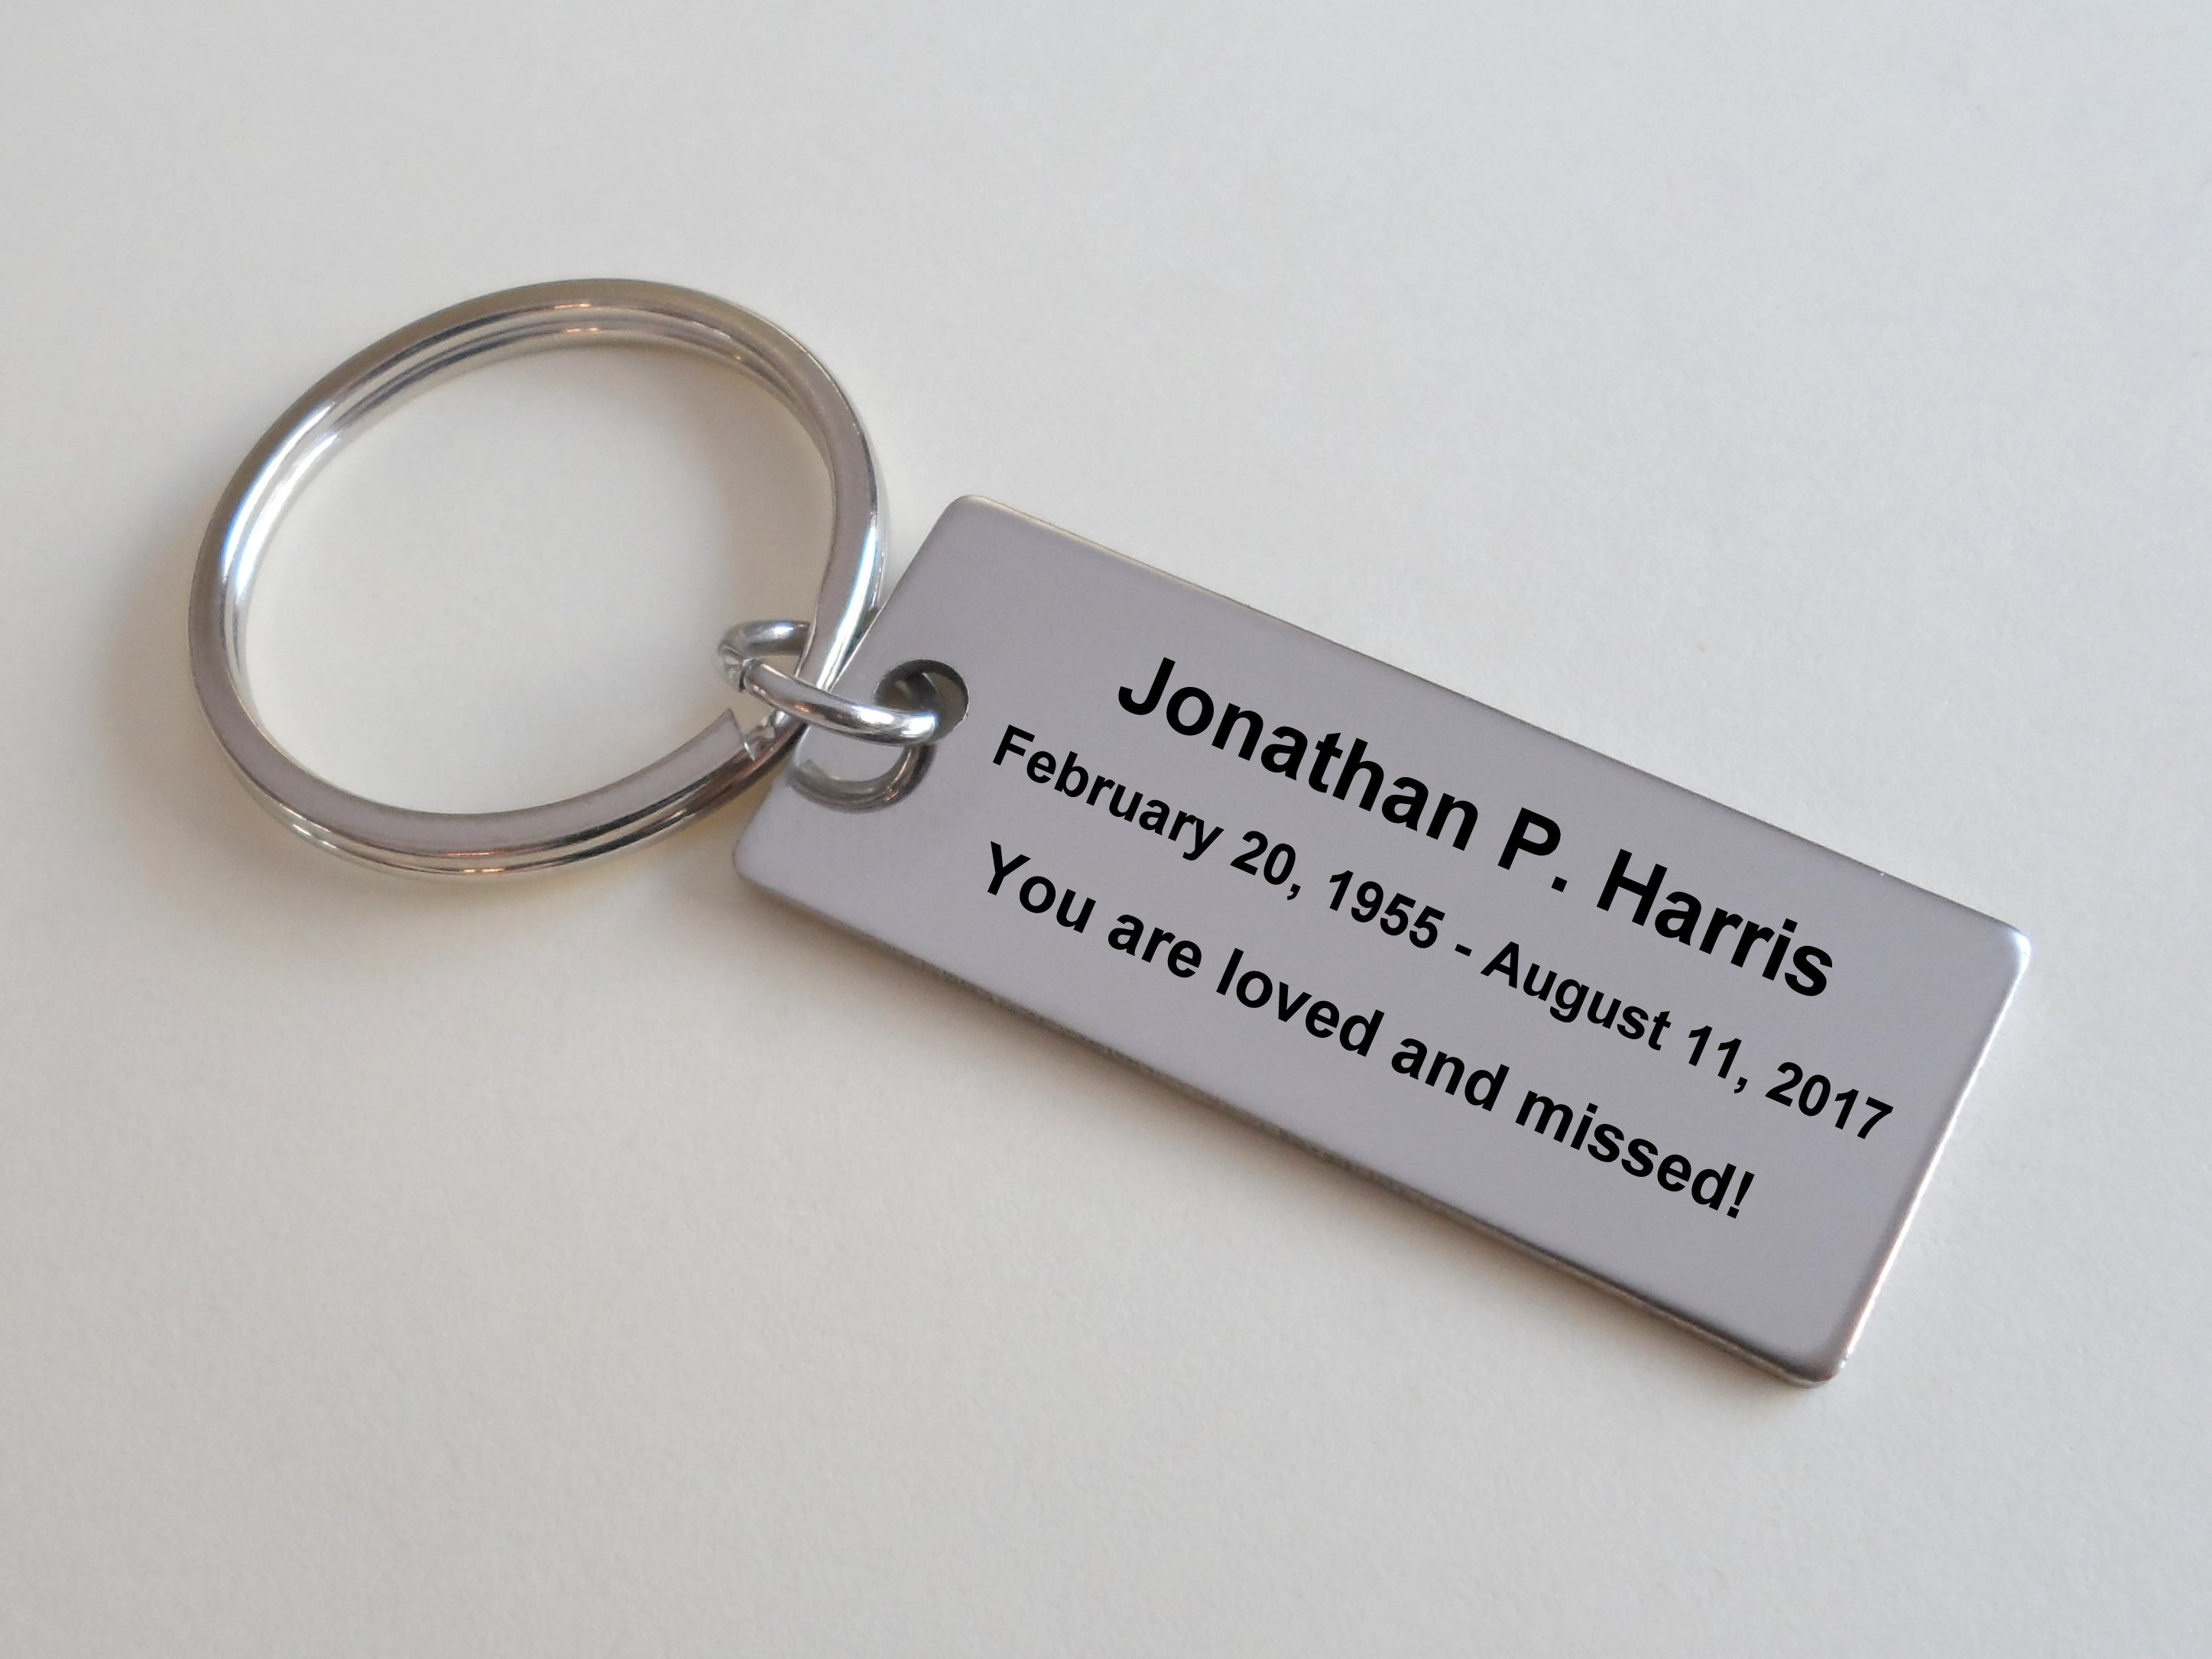 Personalized Custom Engraved Memorial Keychain, Family Loss Keychain Gift,  Remembrance Keychain, Memorial Gift, Stainless Steel Keychain